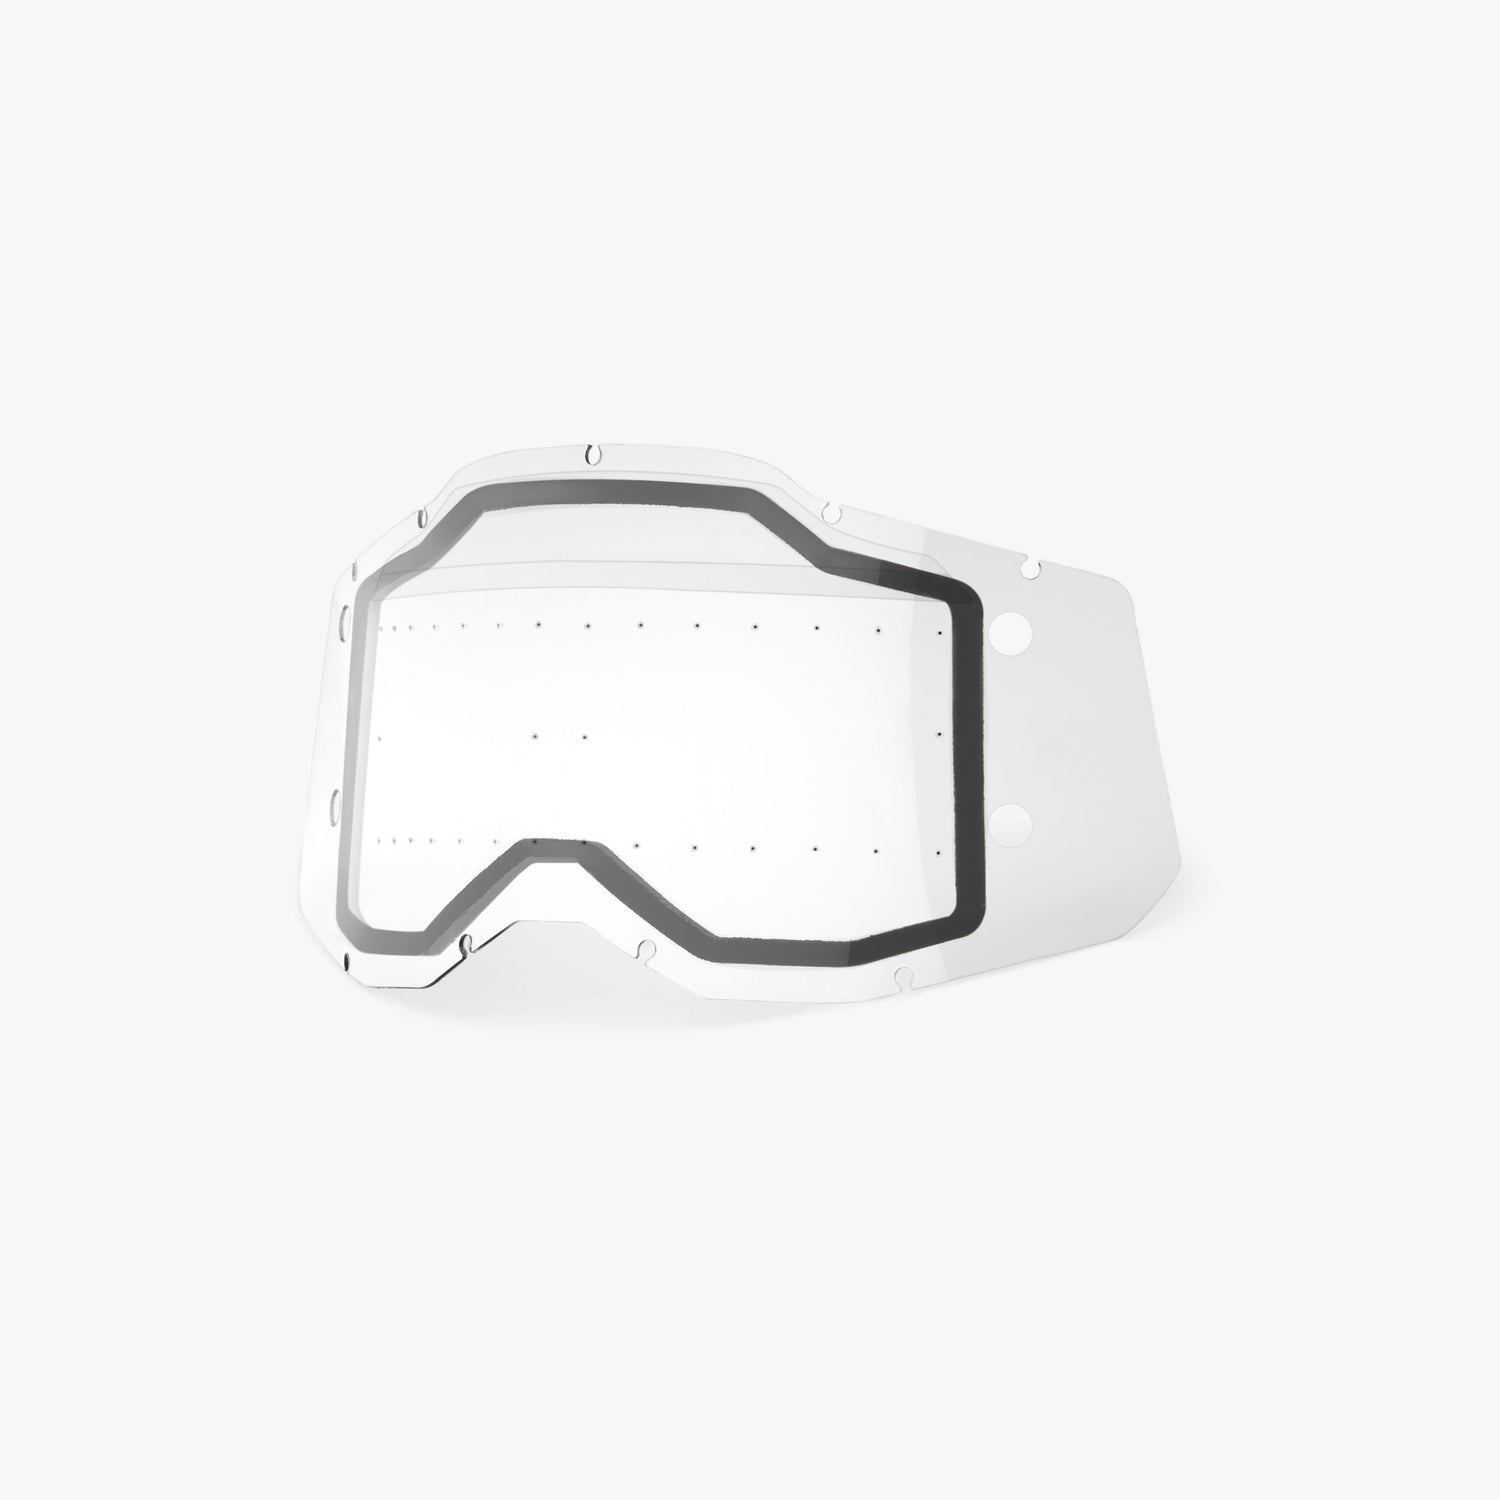 RACECRAFT2/ACCURI2/STRATA2 FORECAST Replacement Lens - Dual Pane w/ bumps Clear